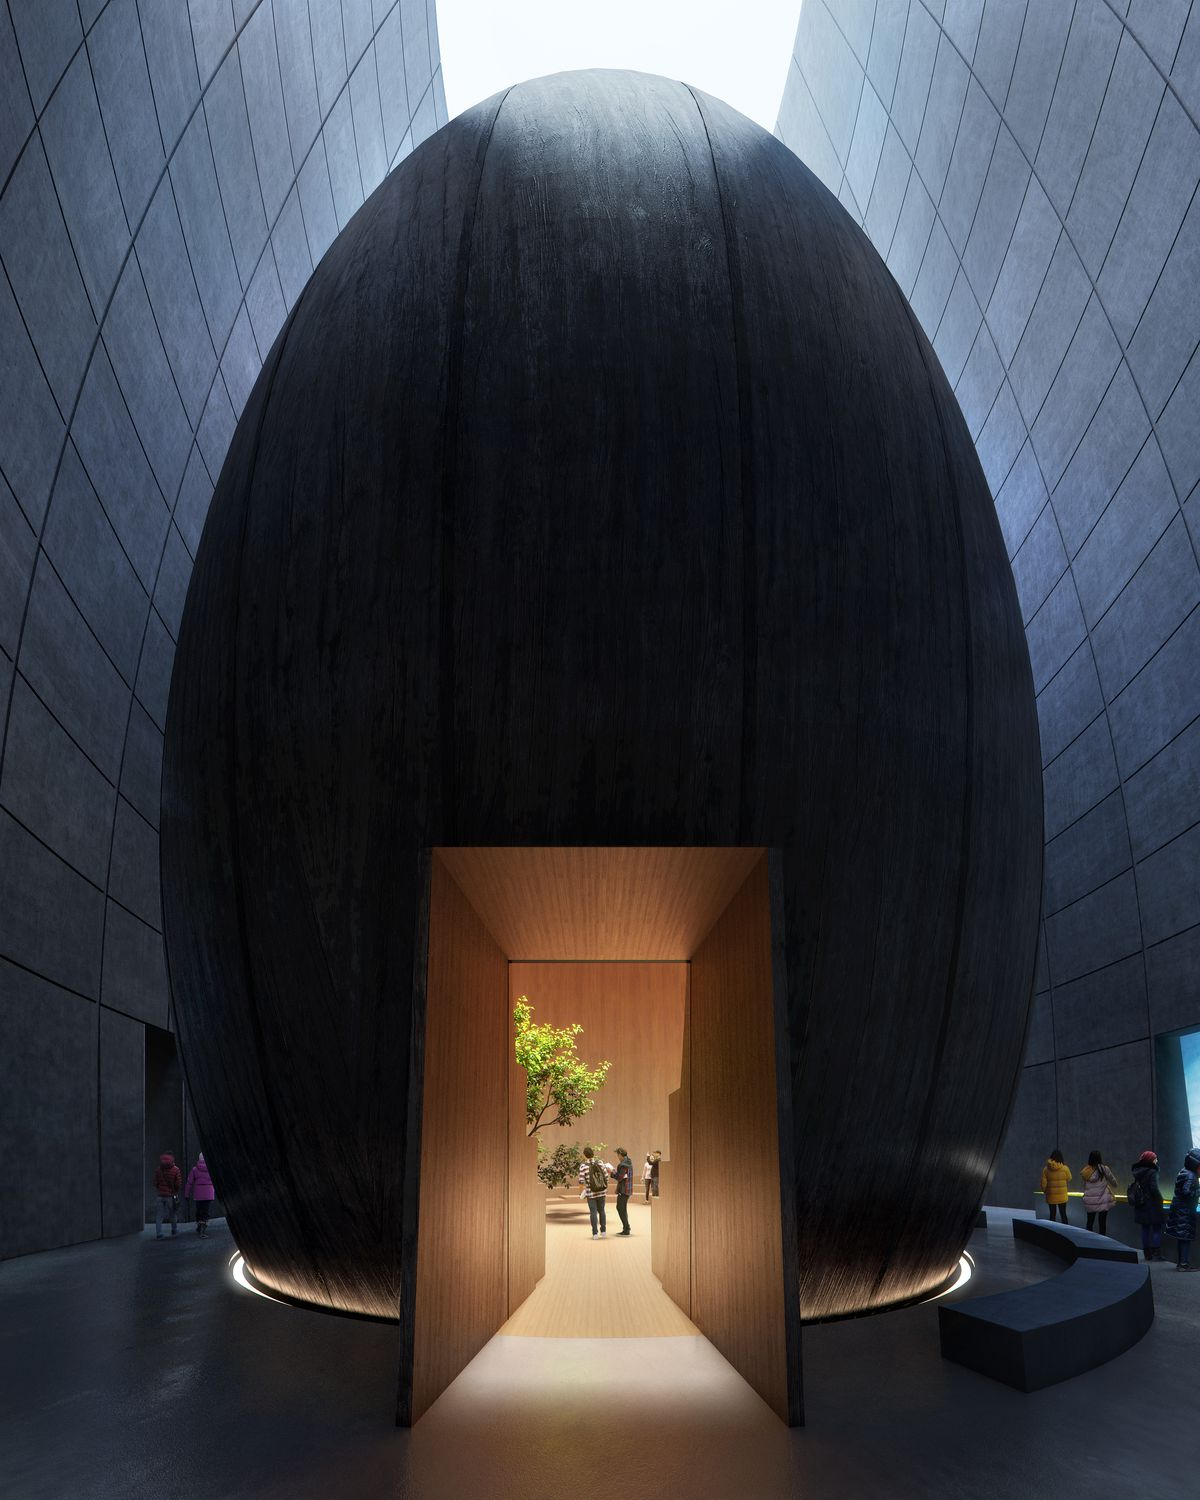 Entrance to black conical visitor center contains a view into an inner chamber with wooden walls and a tree.